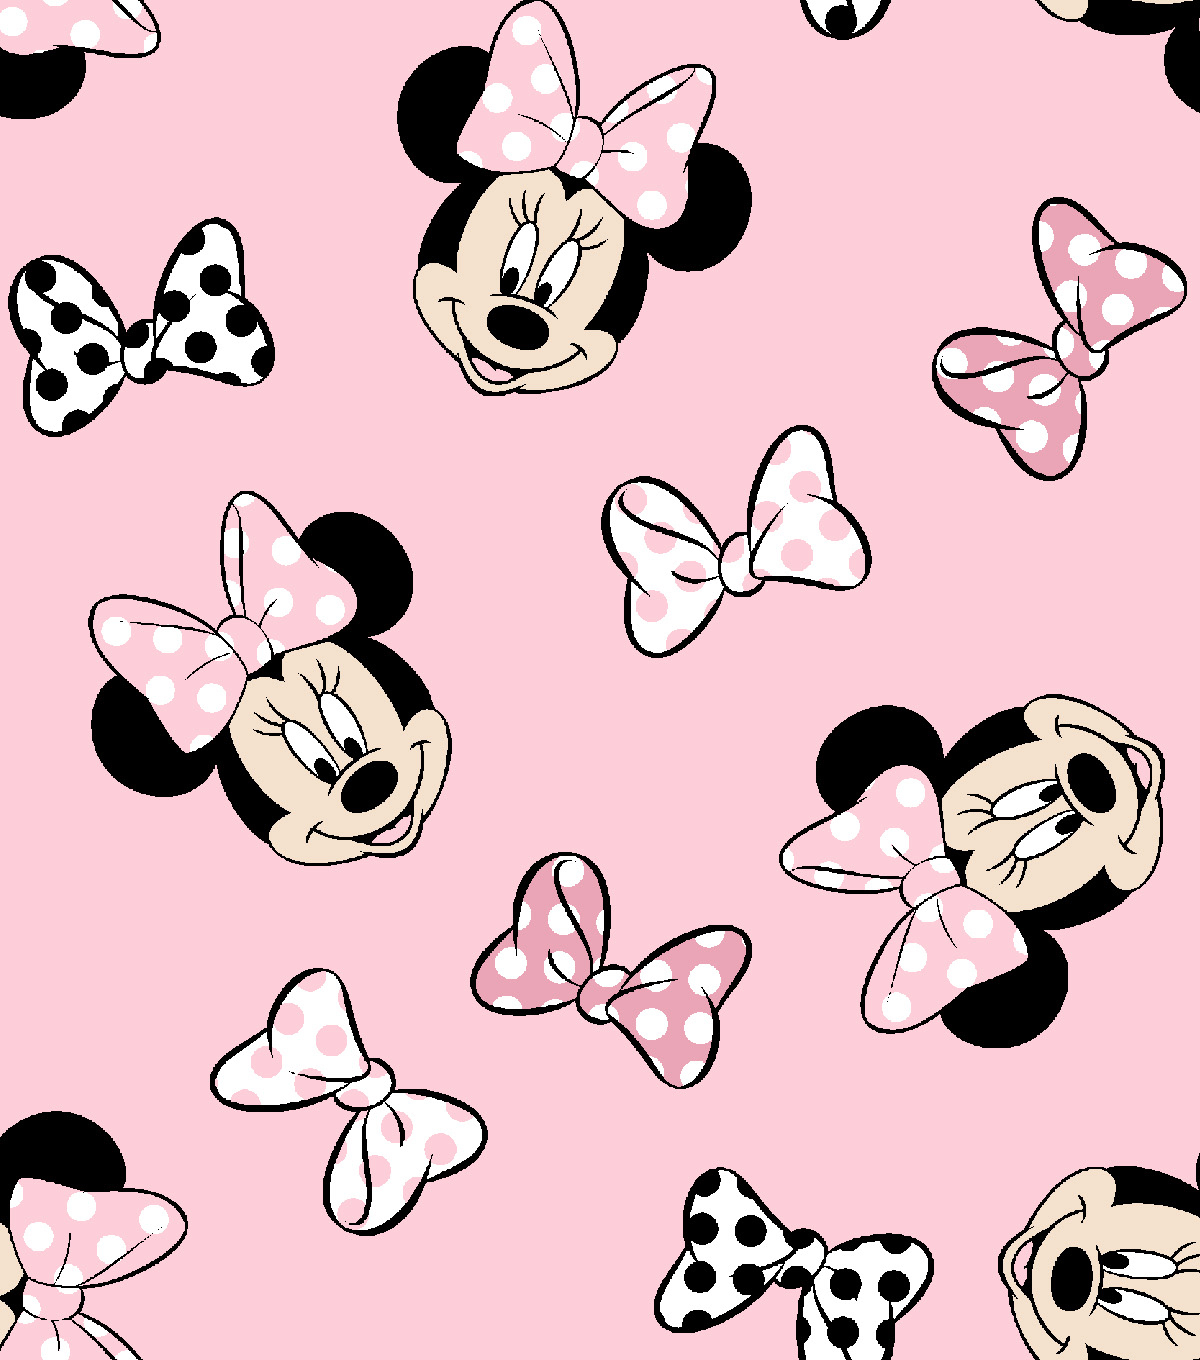 Disney Minnie Mouse Knit Fabric 58\'\'-Tossed | JOANN